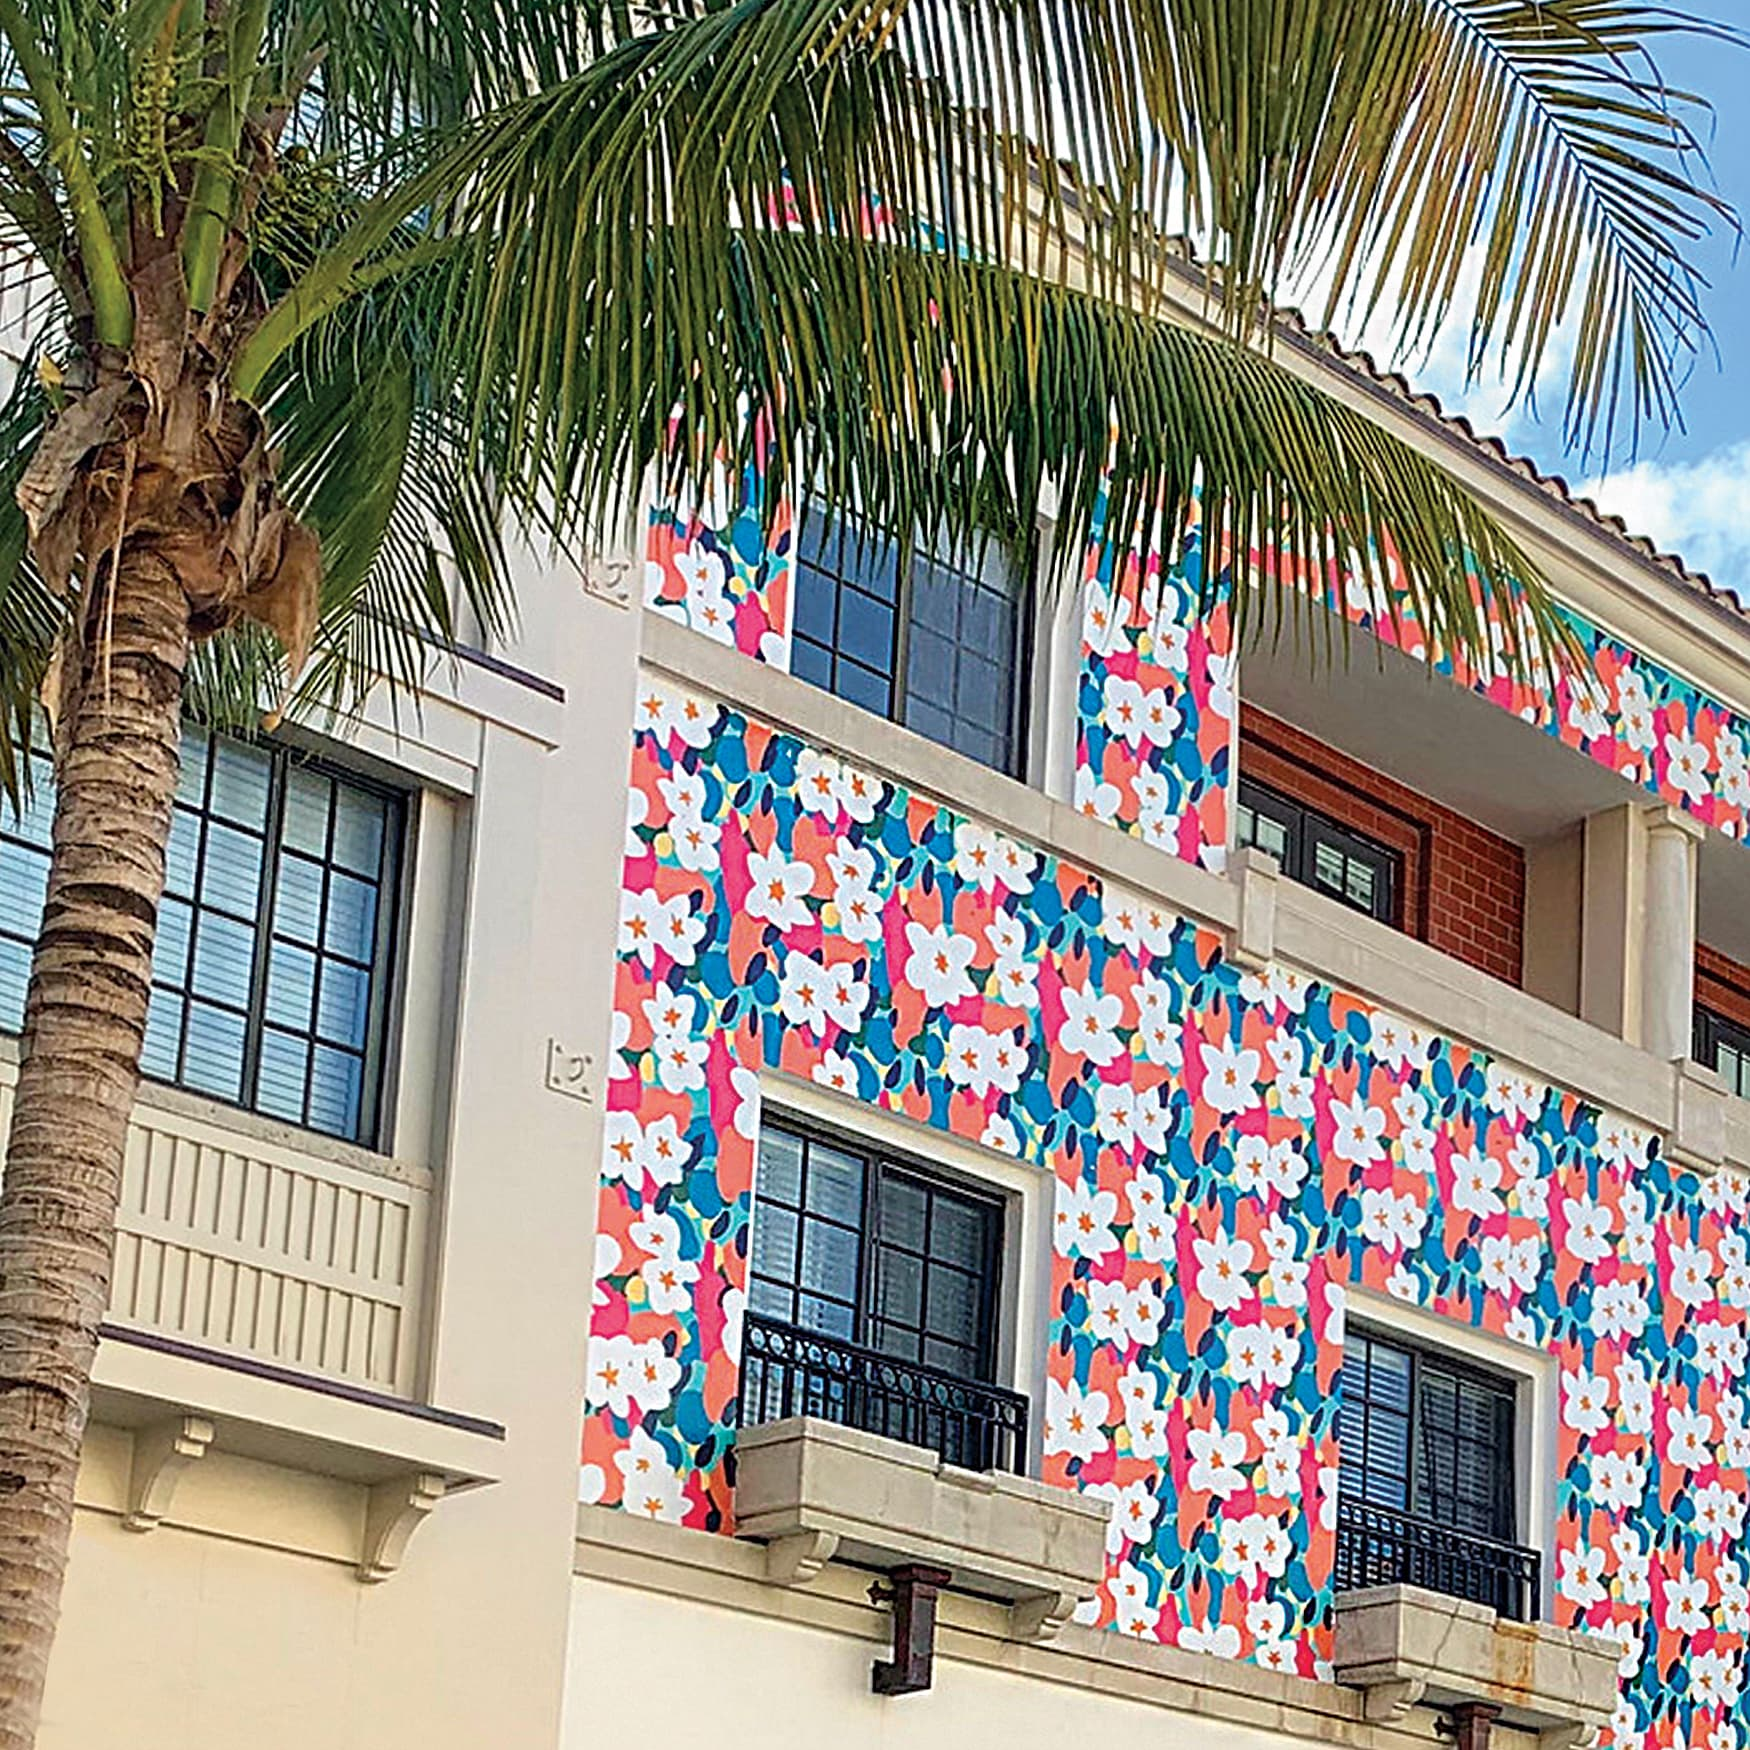 Floral pattern painted on architectural facade of retail center in Florida.